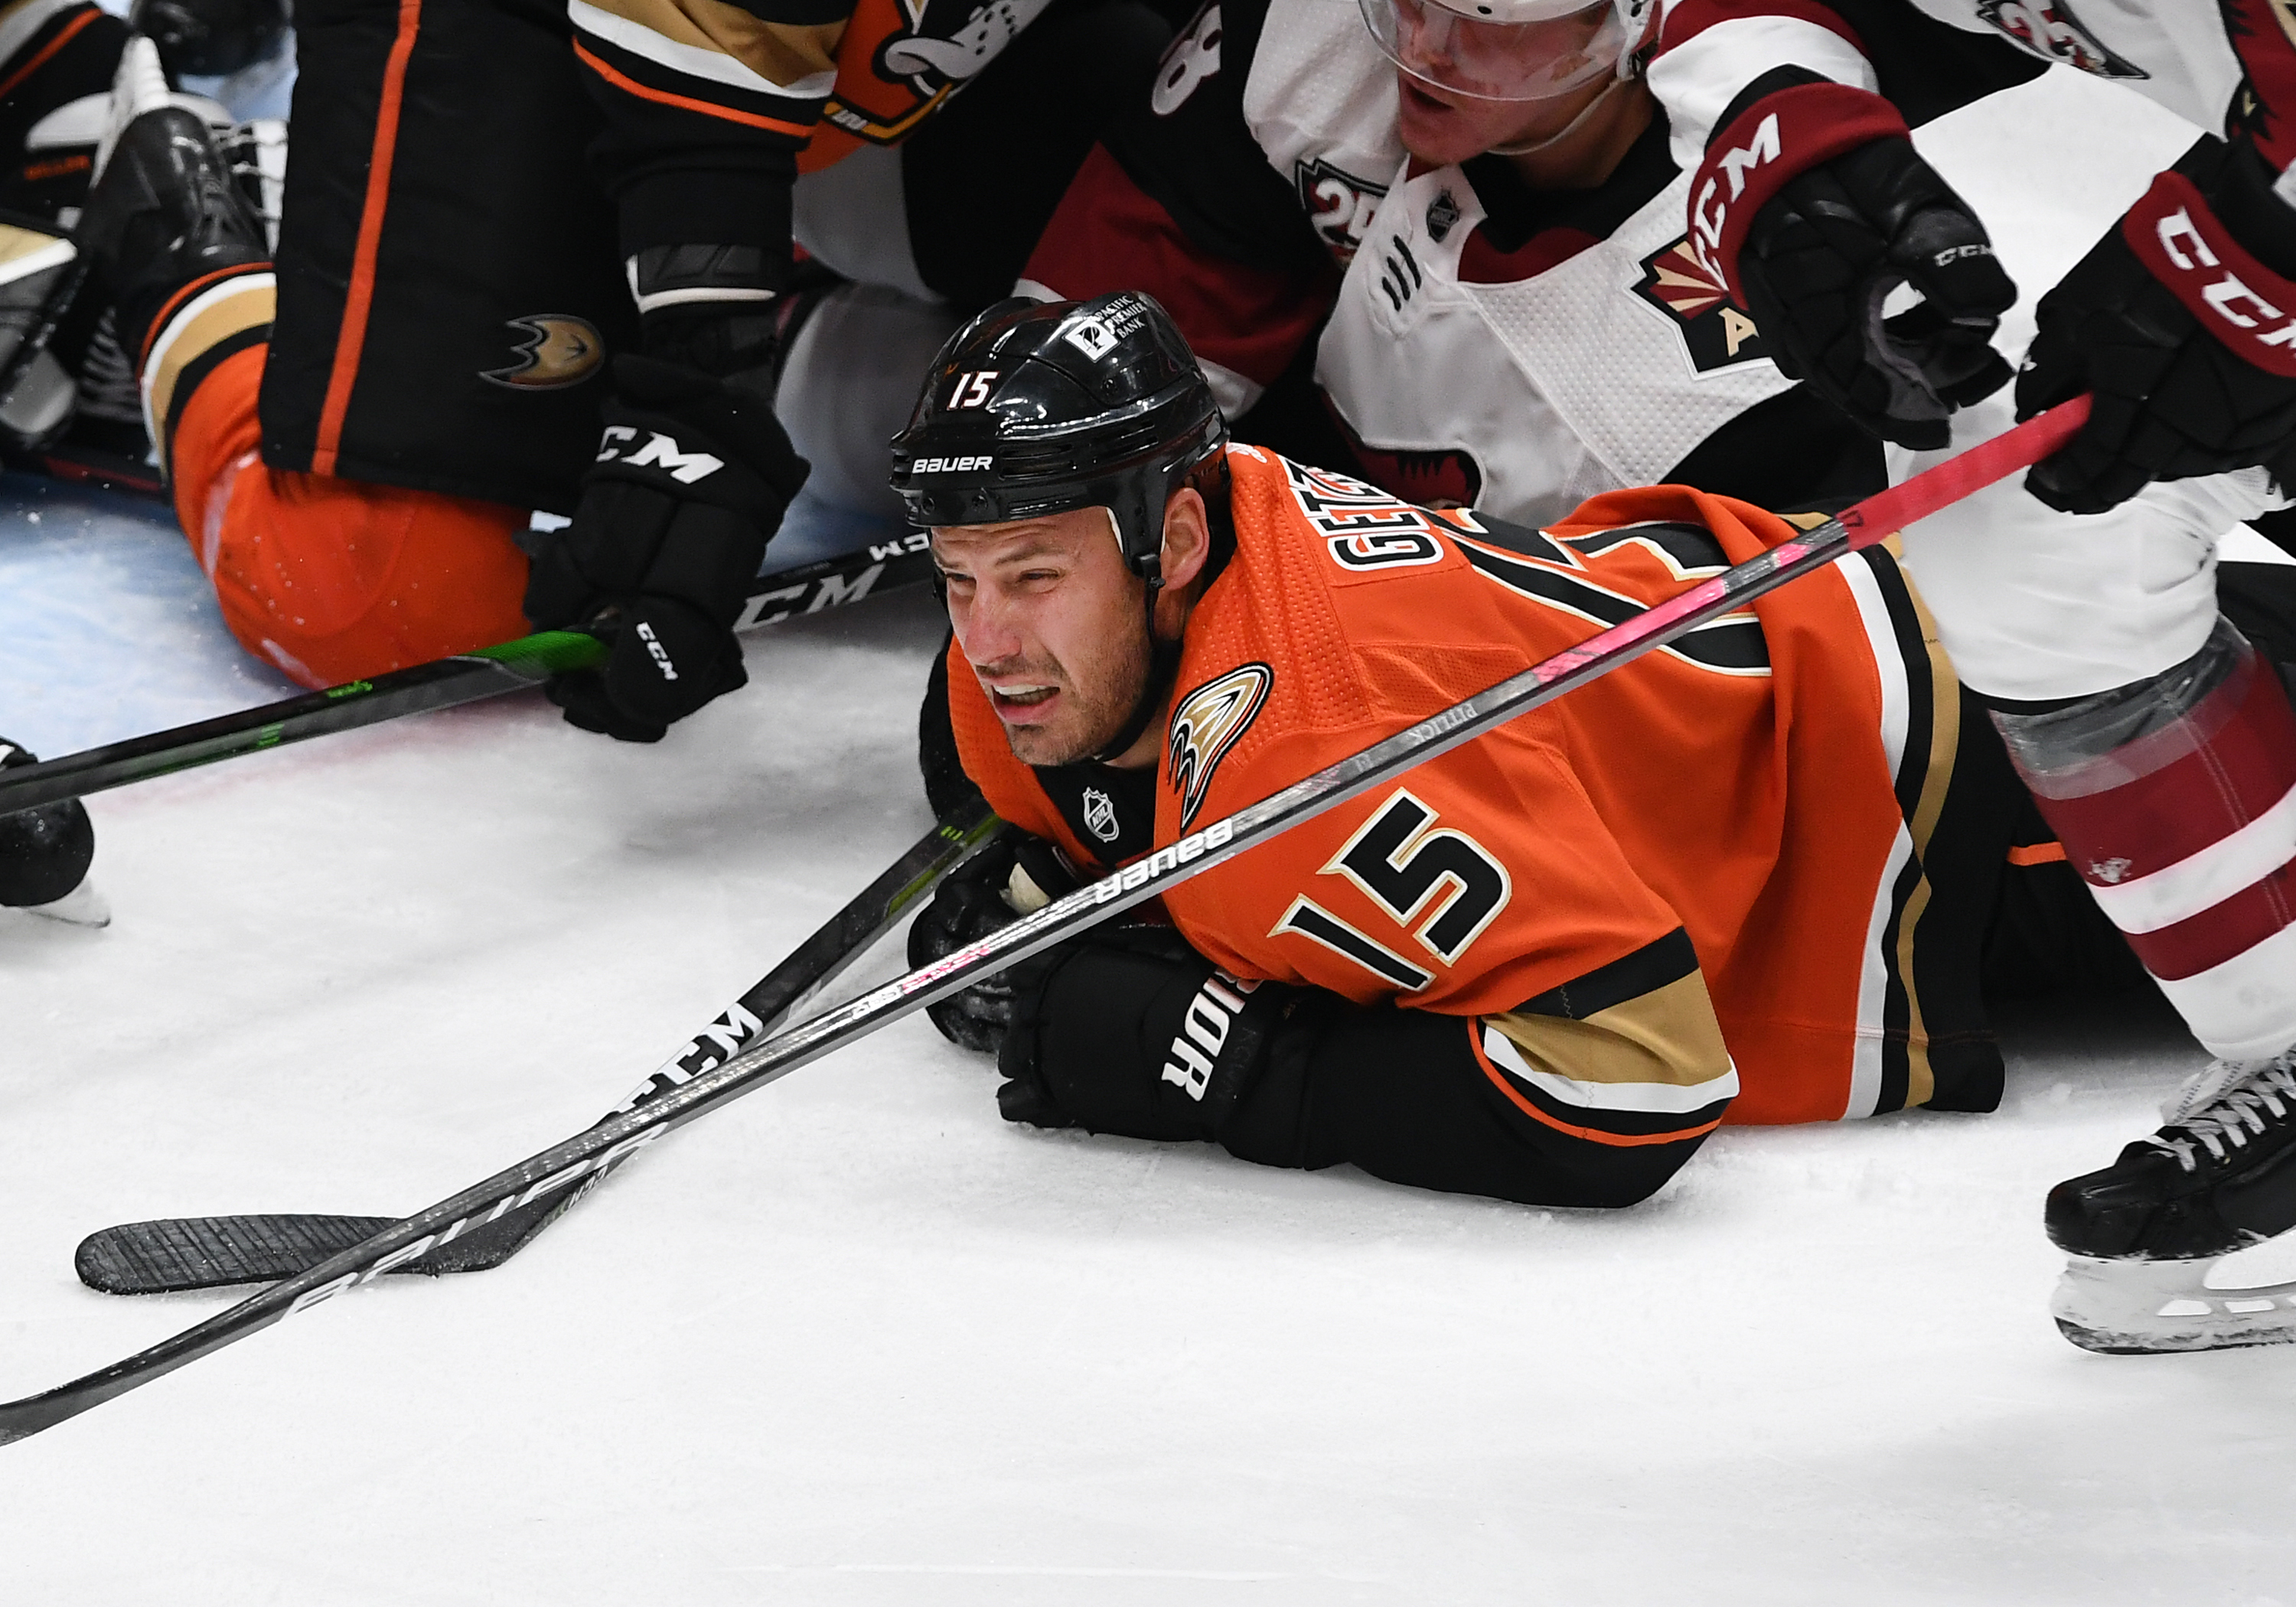 Anaheim Ducks Center Ryan Getzlaf (15) diving for the puck in the third period of a game against the Arizona Coyotes played on March 18, 2021 at the Honda Center in Anaheim, CA.